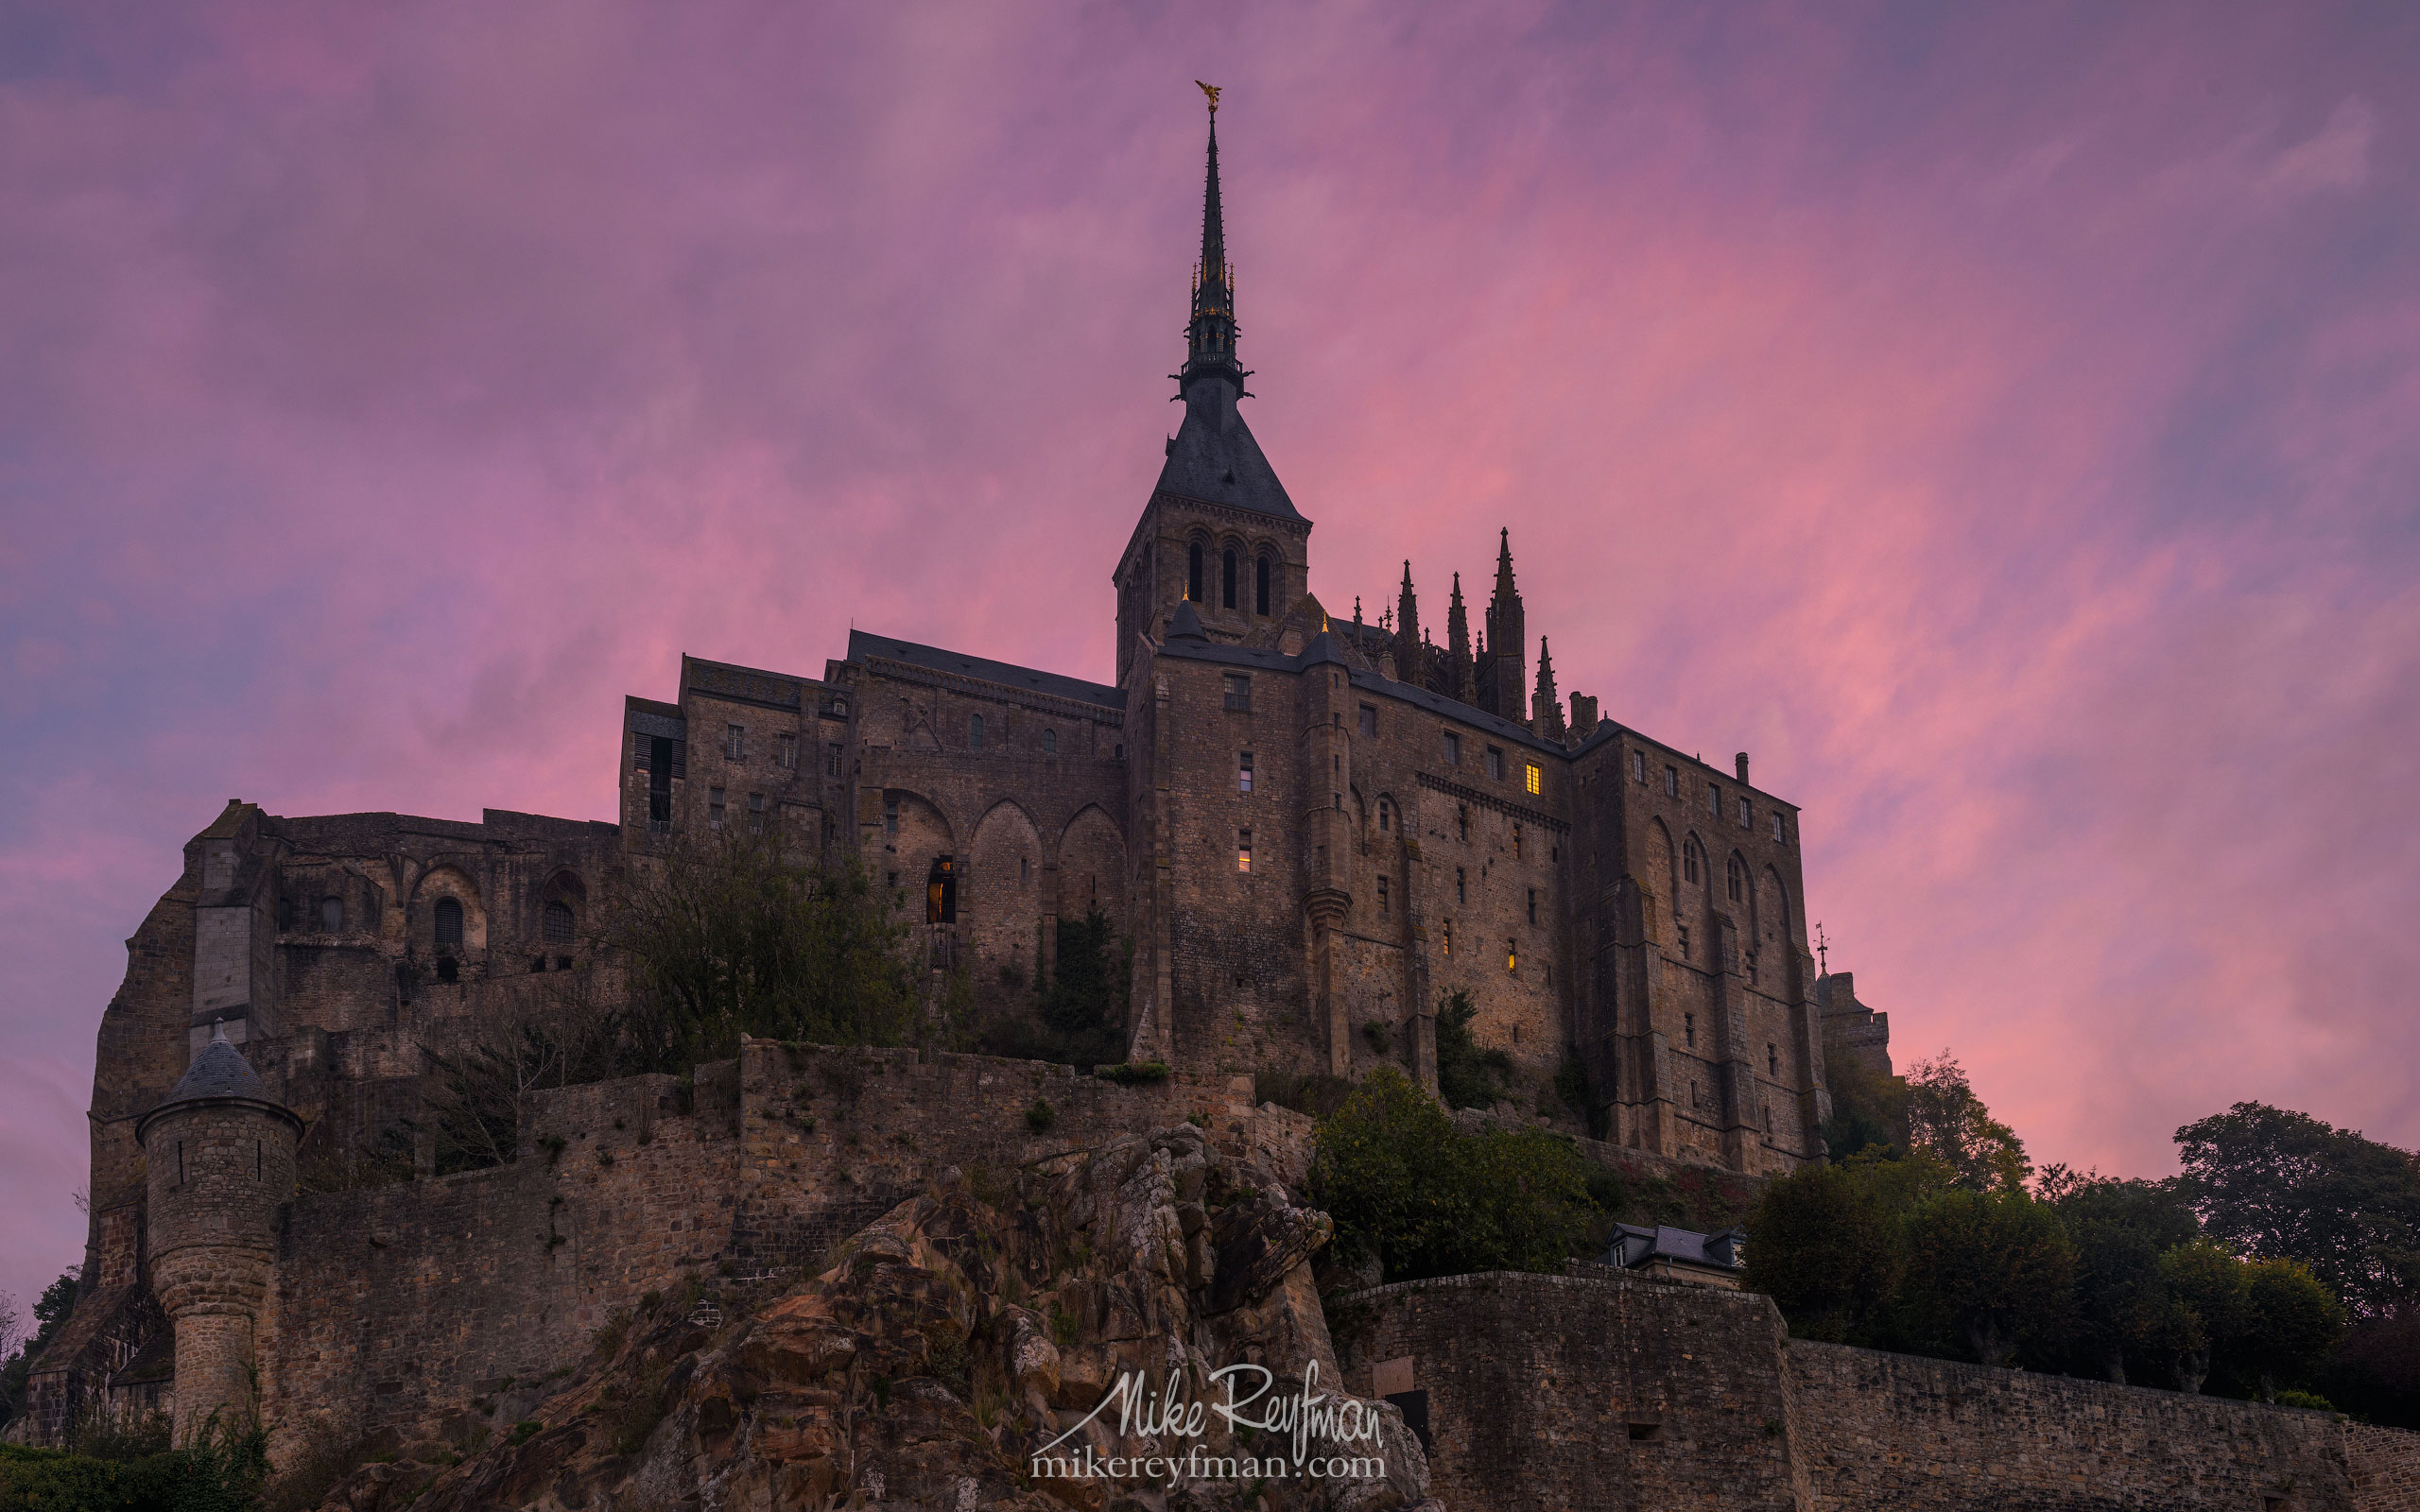 Le Mont-Saint-Michel Island and Benedictine Abbey. Normandy, France SM_MR50A1118 - Le Mont Saint Michel Island and Benedictine Abbey, Normandy, France - Mike Reyfman Photography